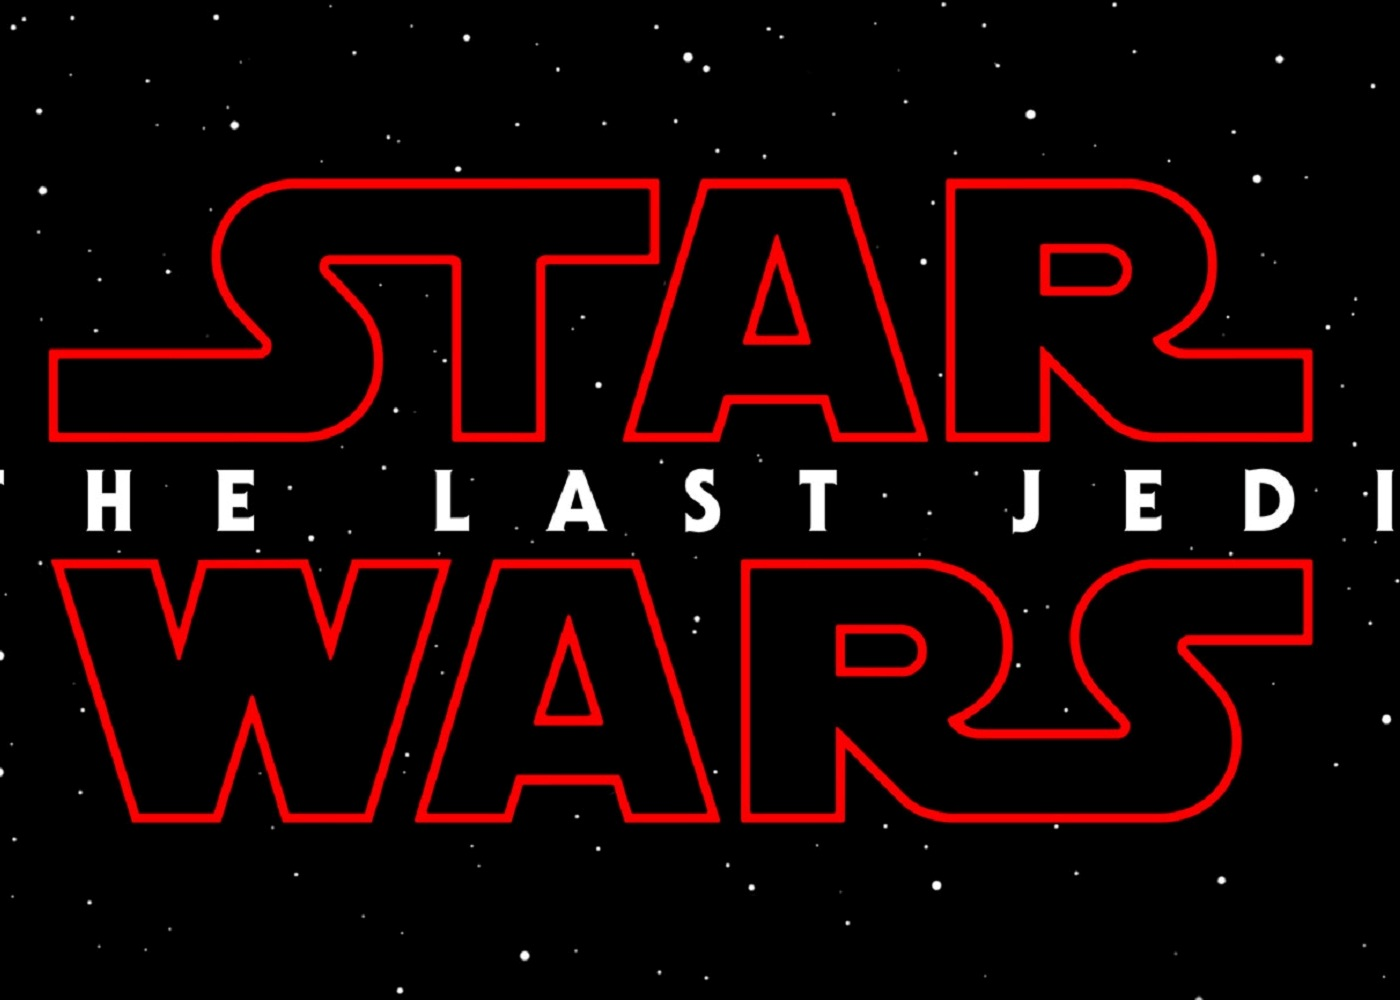 Last Jedi Wrapped as Post-Production Ends